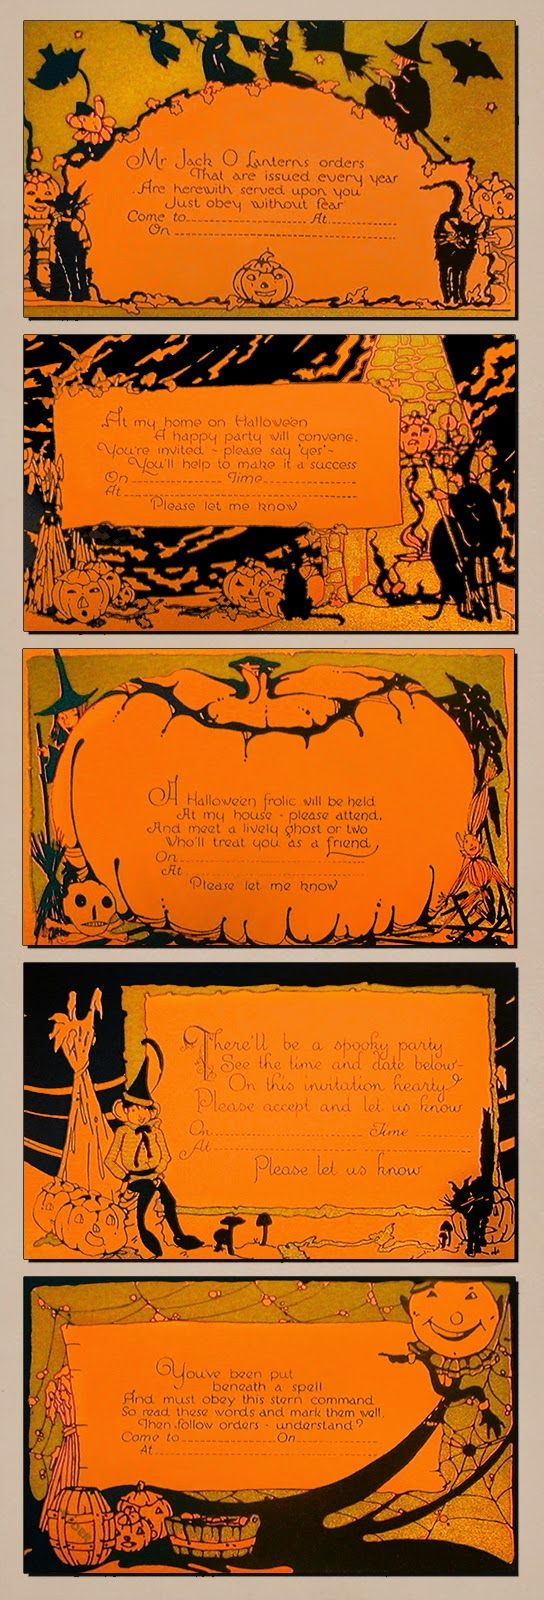 Pin by Patti Cooper on This is Halloween.   Pinterest   Vintage ...